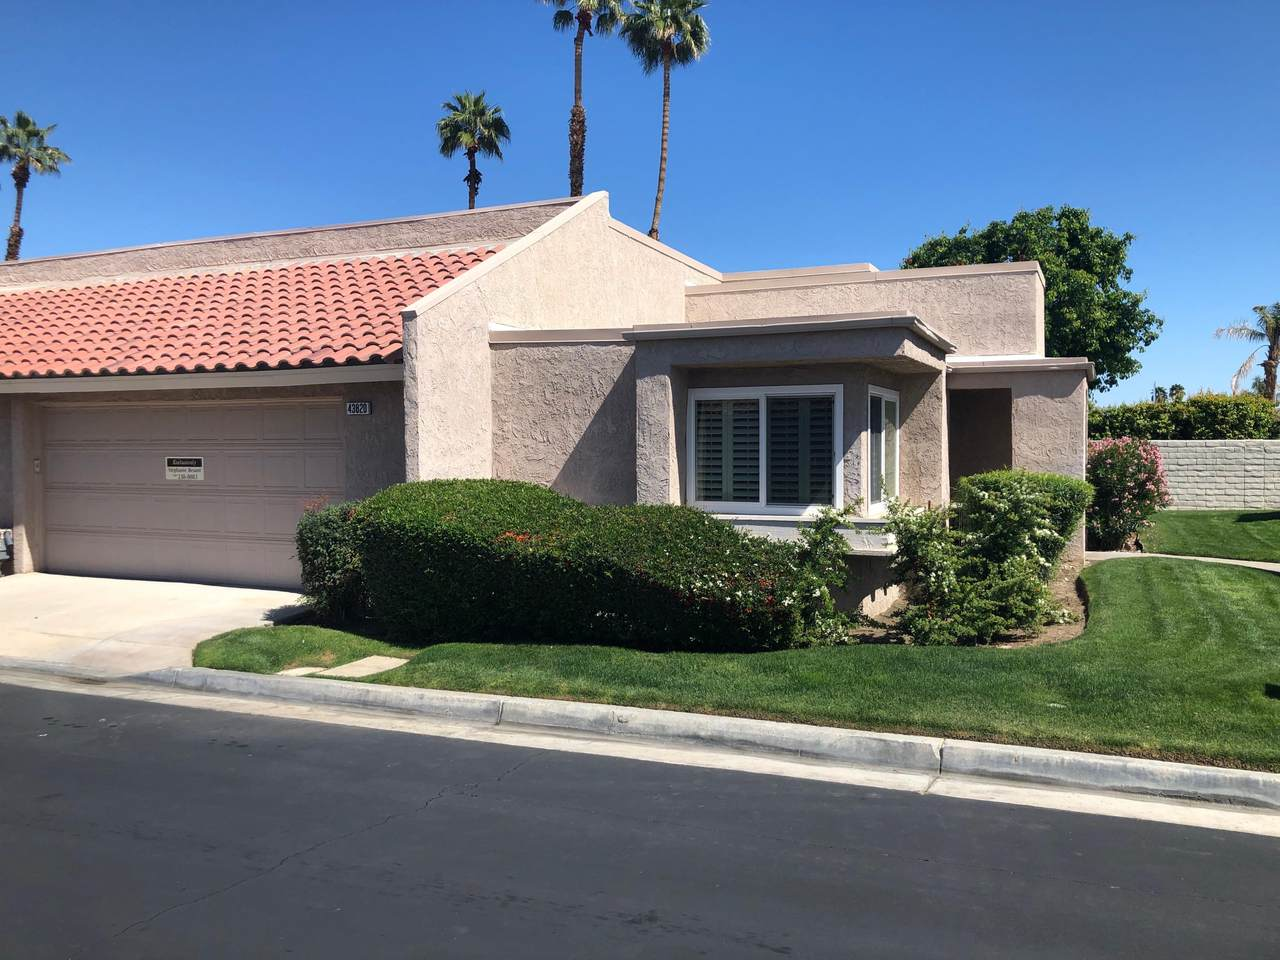 43820 San Ysidro Circle - Photo 1